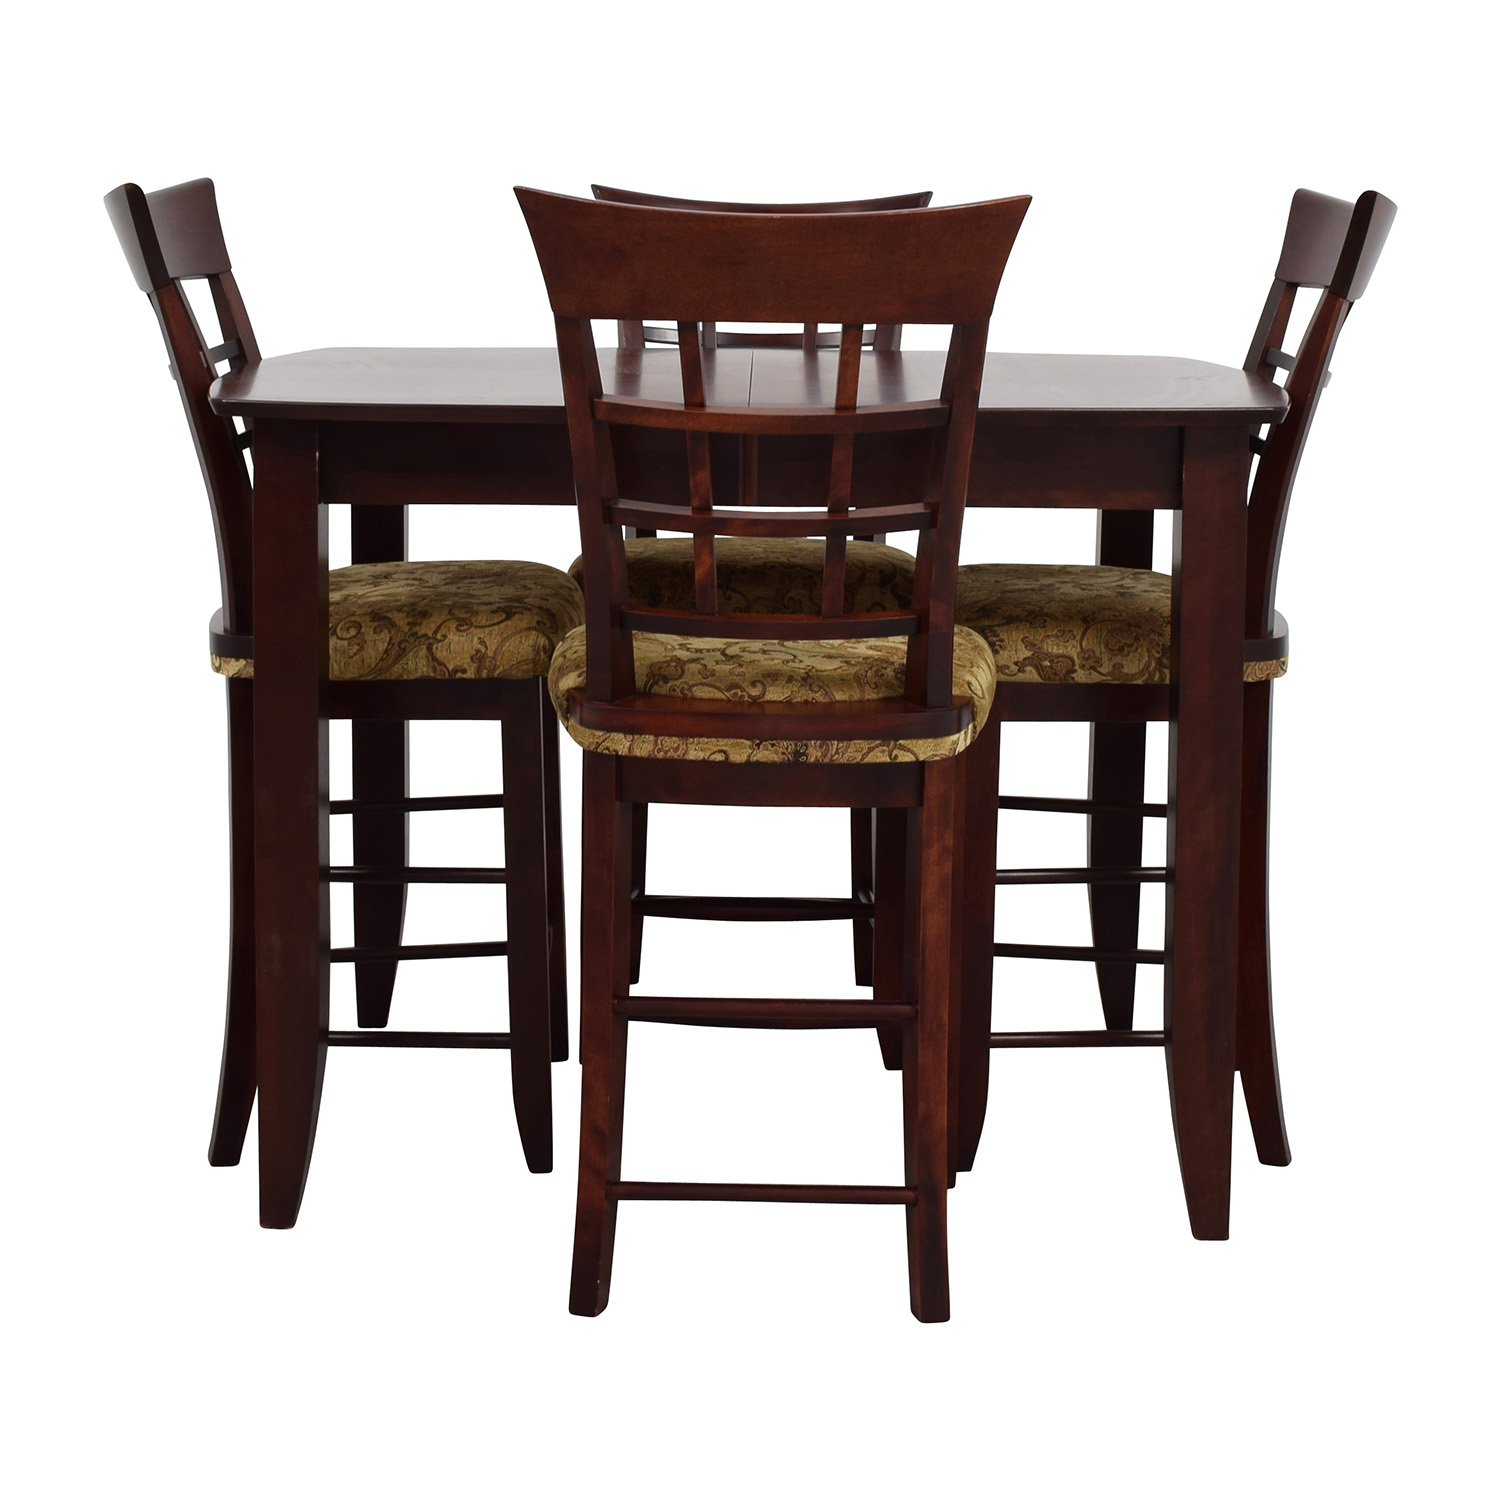 High top dining chairs high top dining table and chairs for High table and chairs dining set